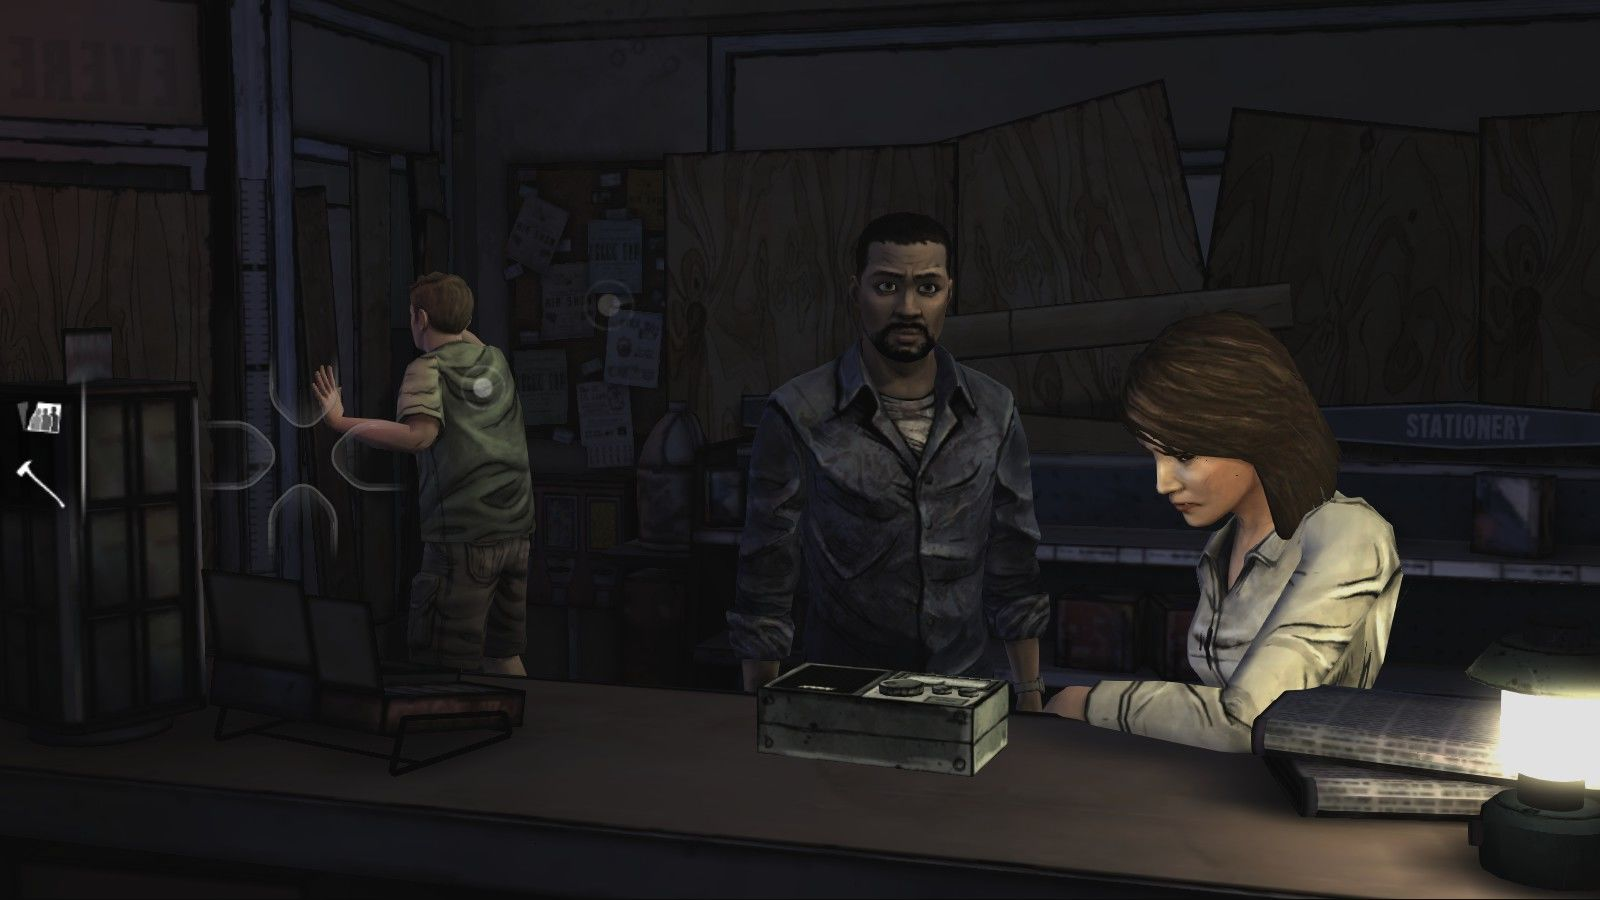 The Walking Dead Windows Episode 1 - Meeting the other survivors. Not all of them are nice people...